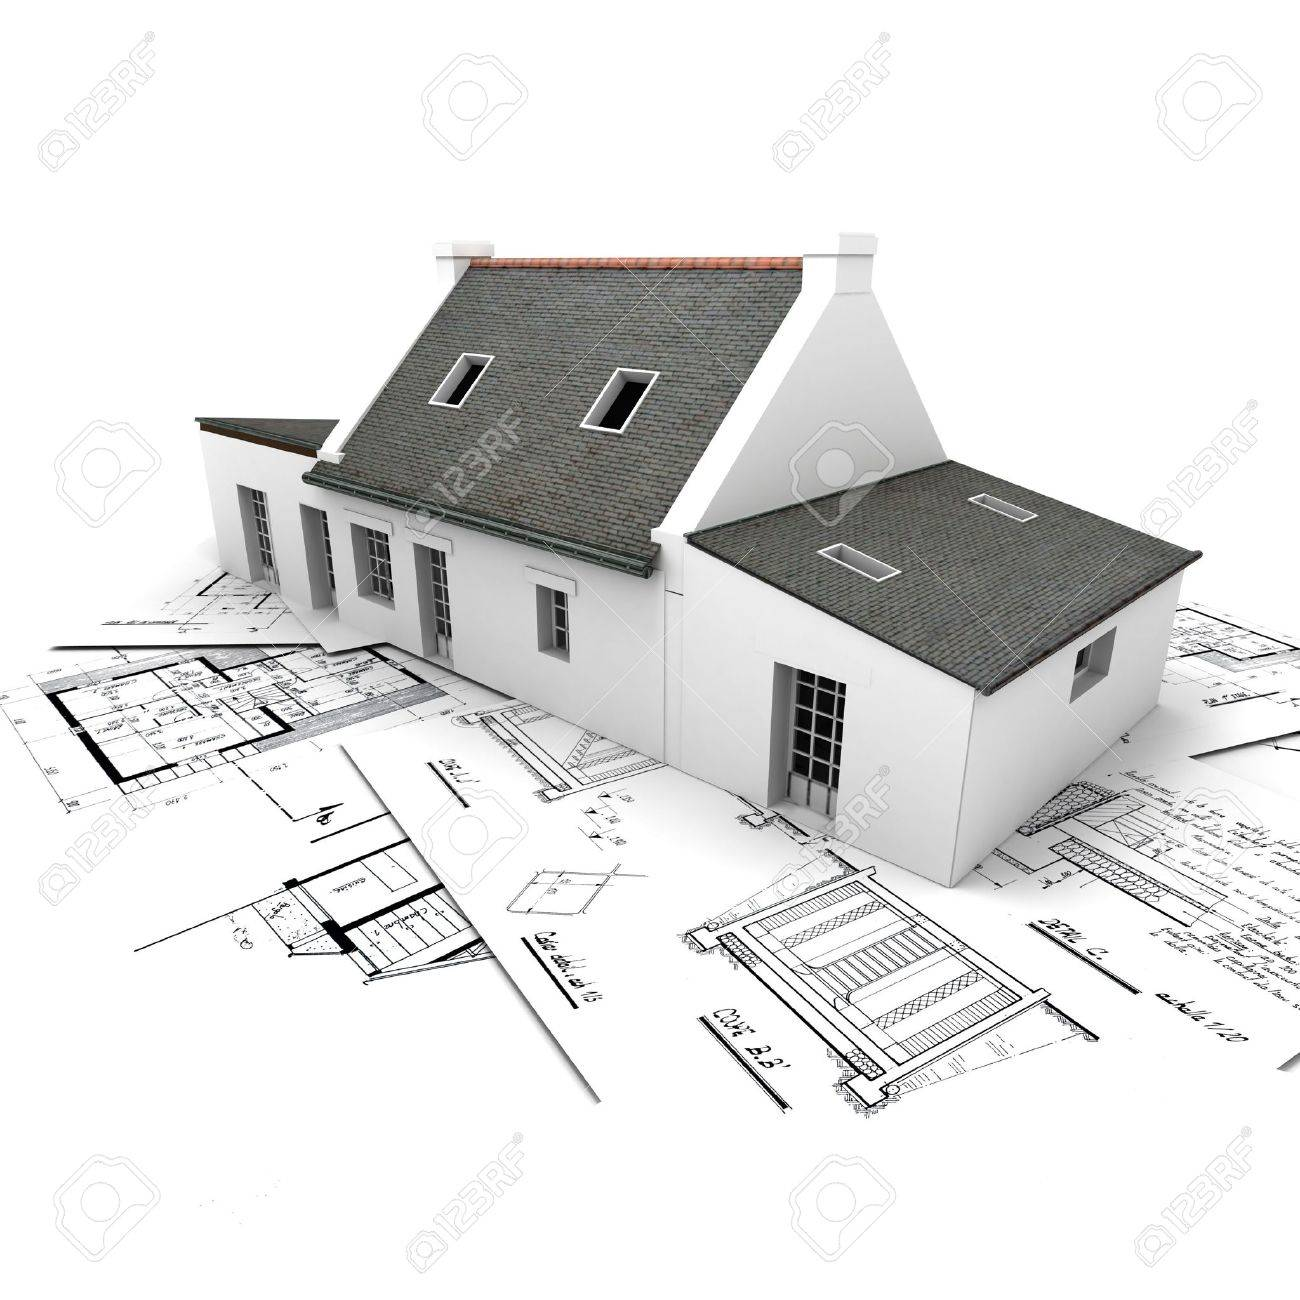 architecture blueprints 3d. Simple Architecture 3D Rendering Of A House On Top Architecture Blueprints Stock Photo   2460500 With Architecture Blueprints 3d N